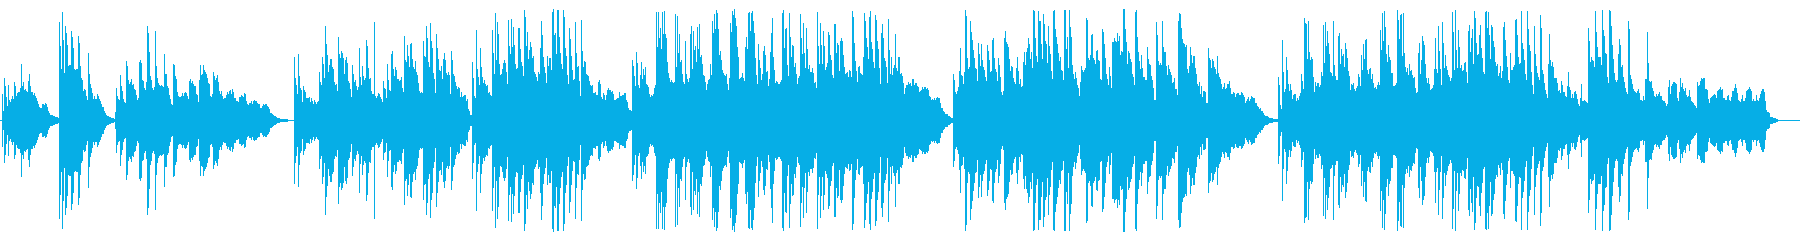 Innocent piano music's reproduced waveform